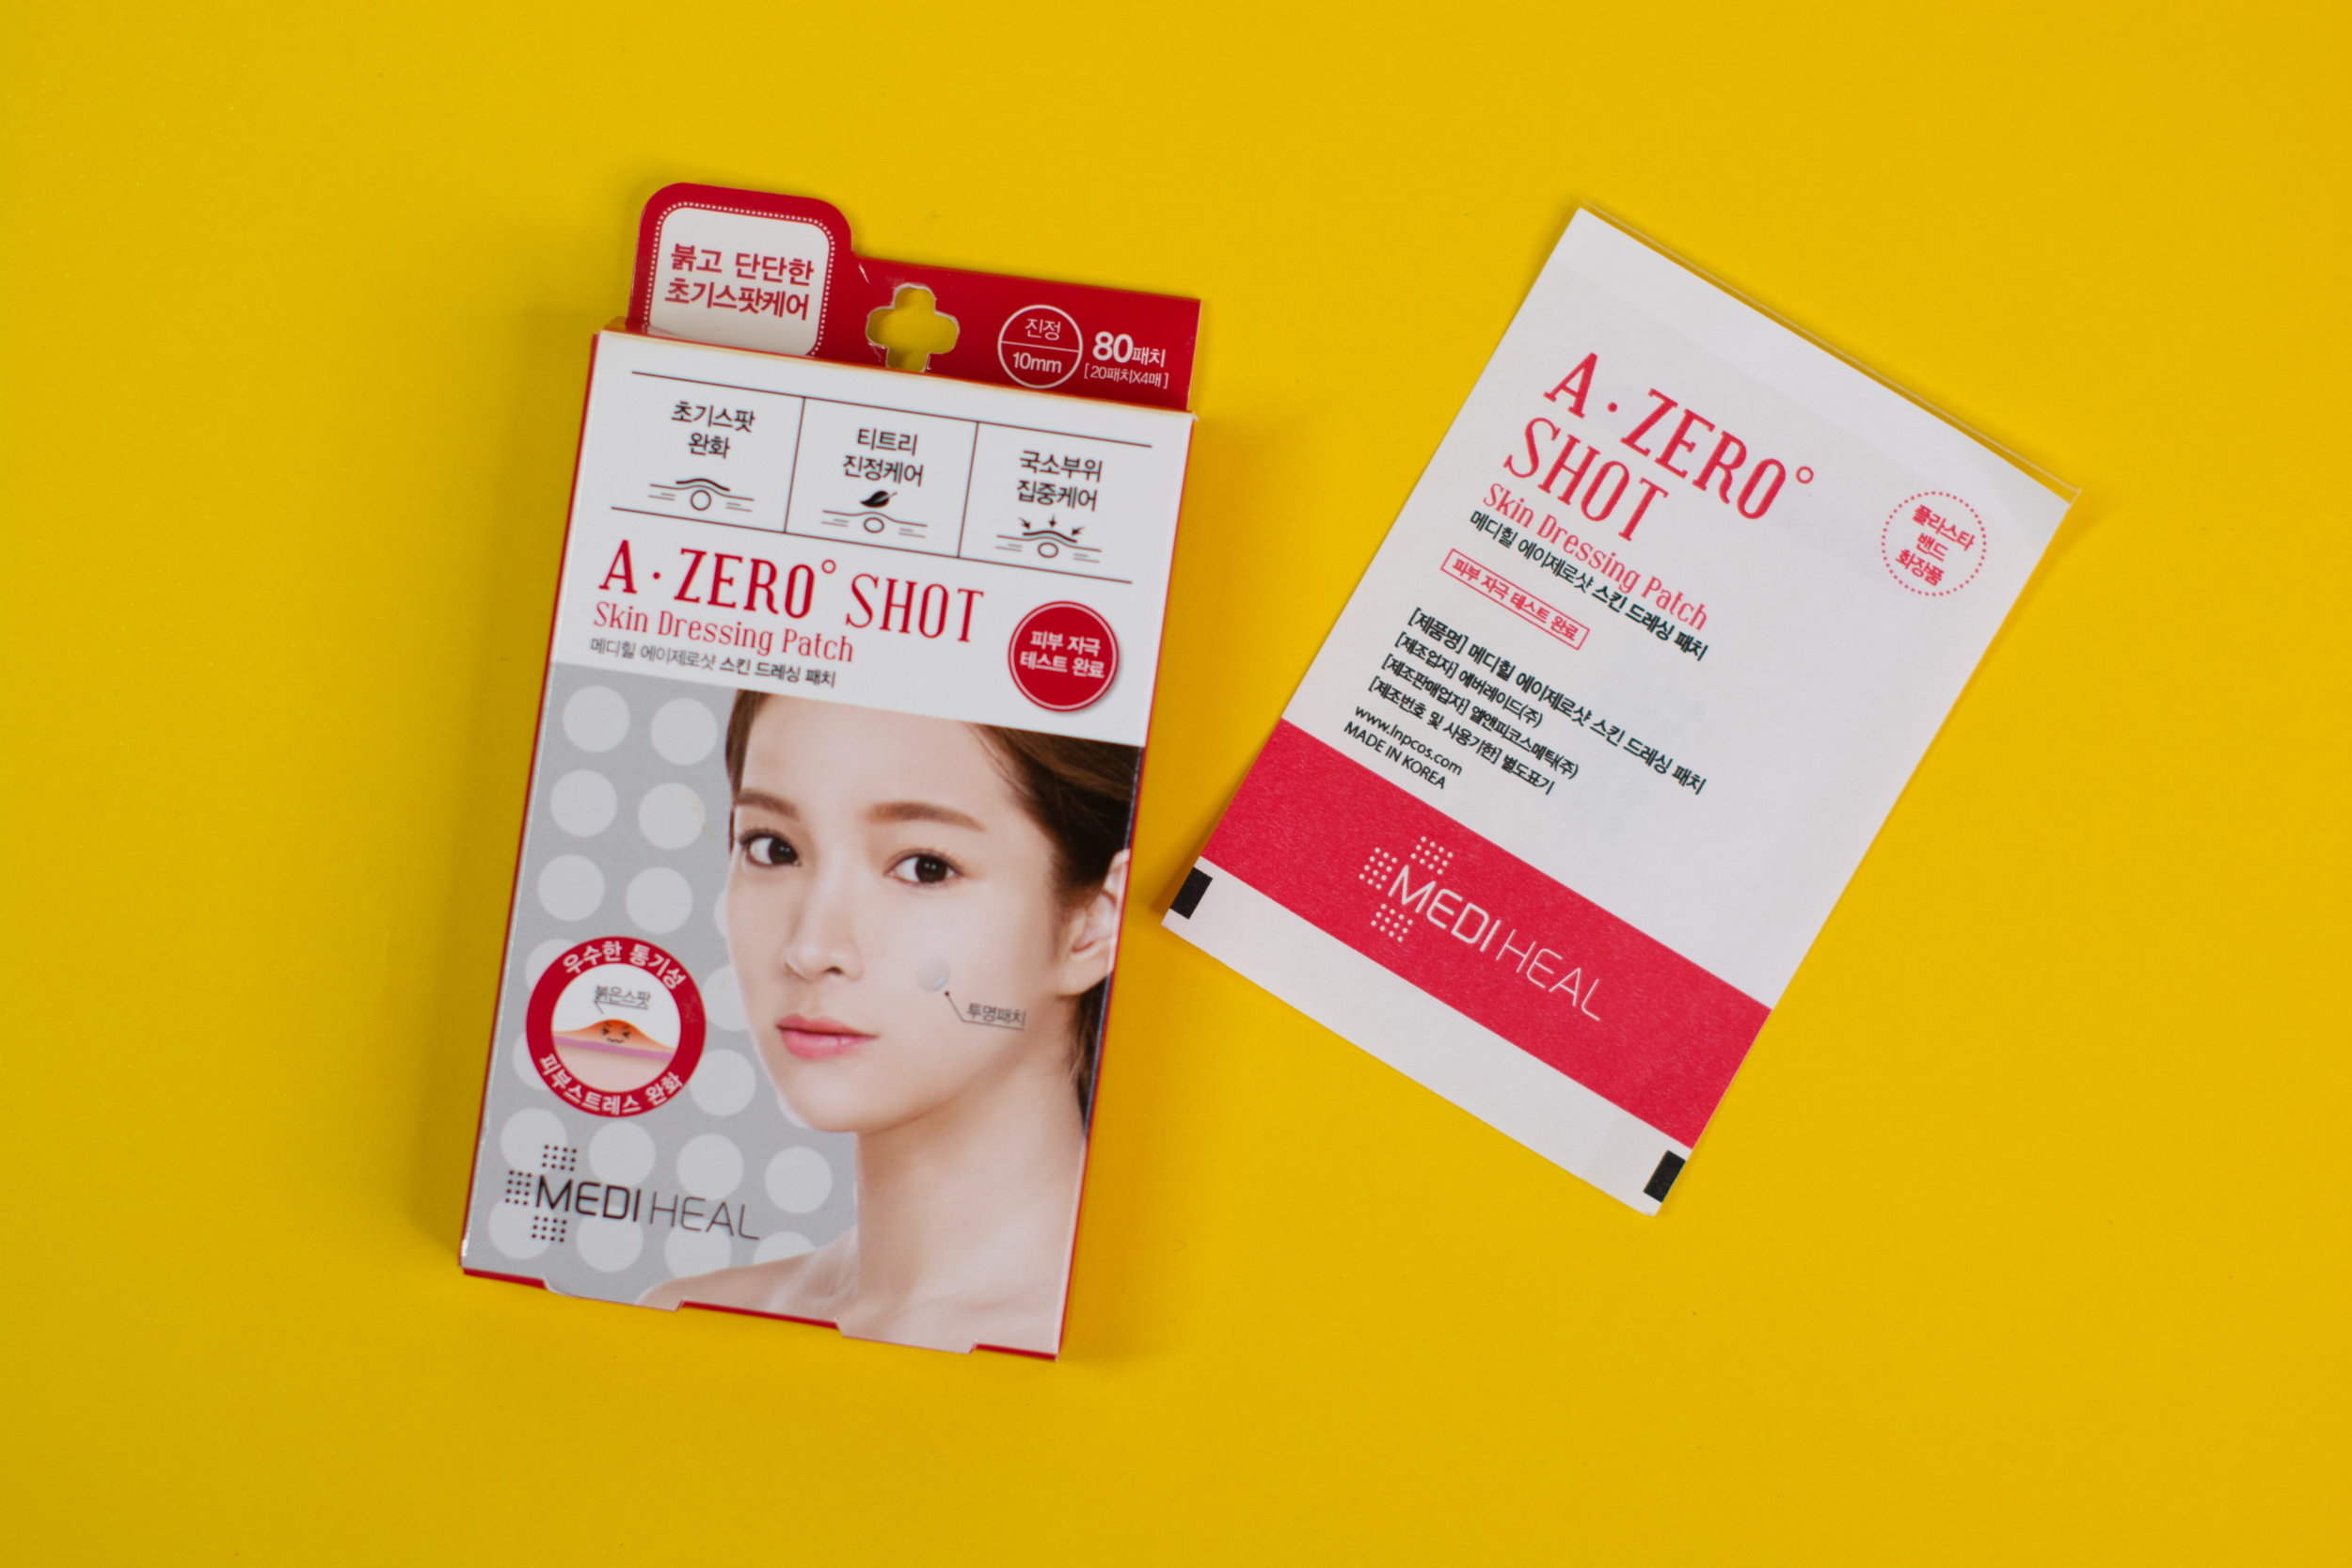 pimple-patch-battle_cosrx_happy-skin_vitacare_luxe-organics_mediheal_review-philippines_2019-3.JPG